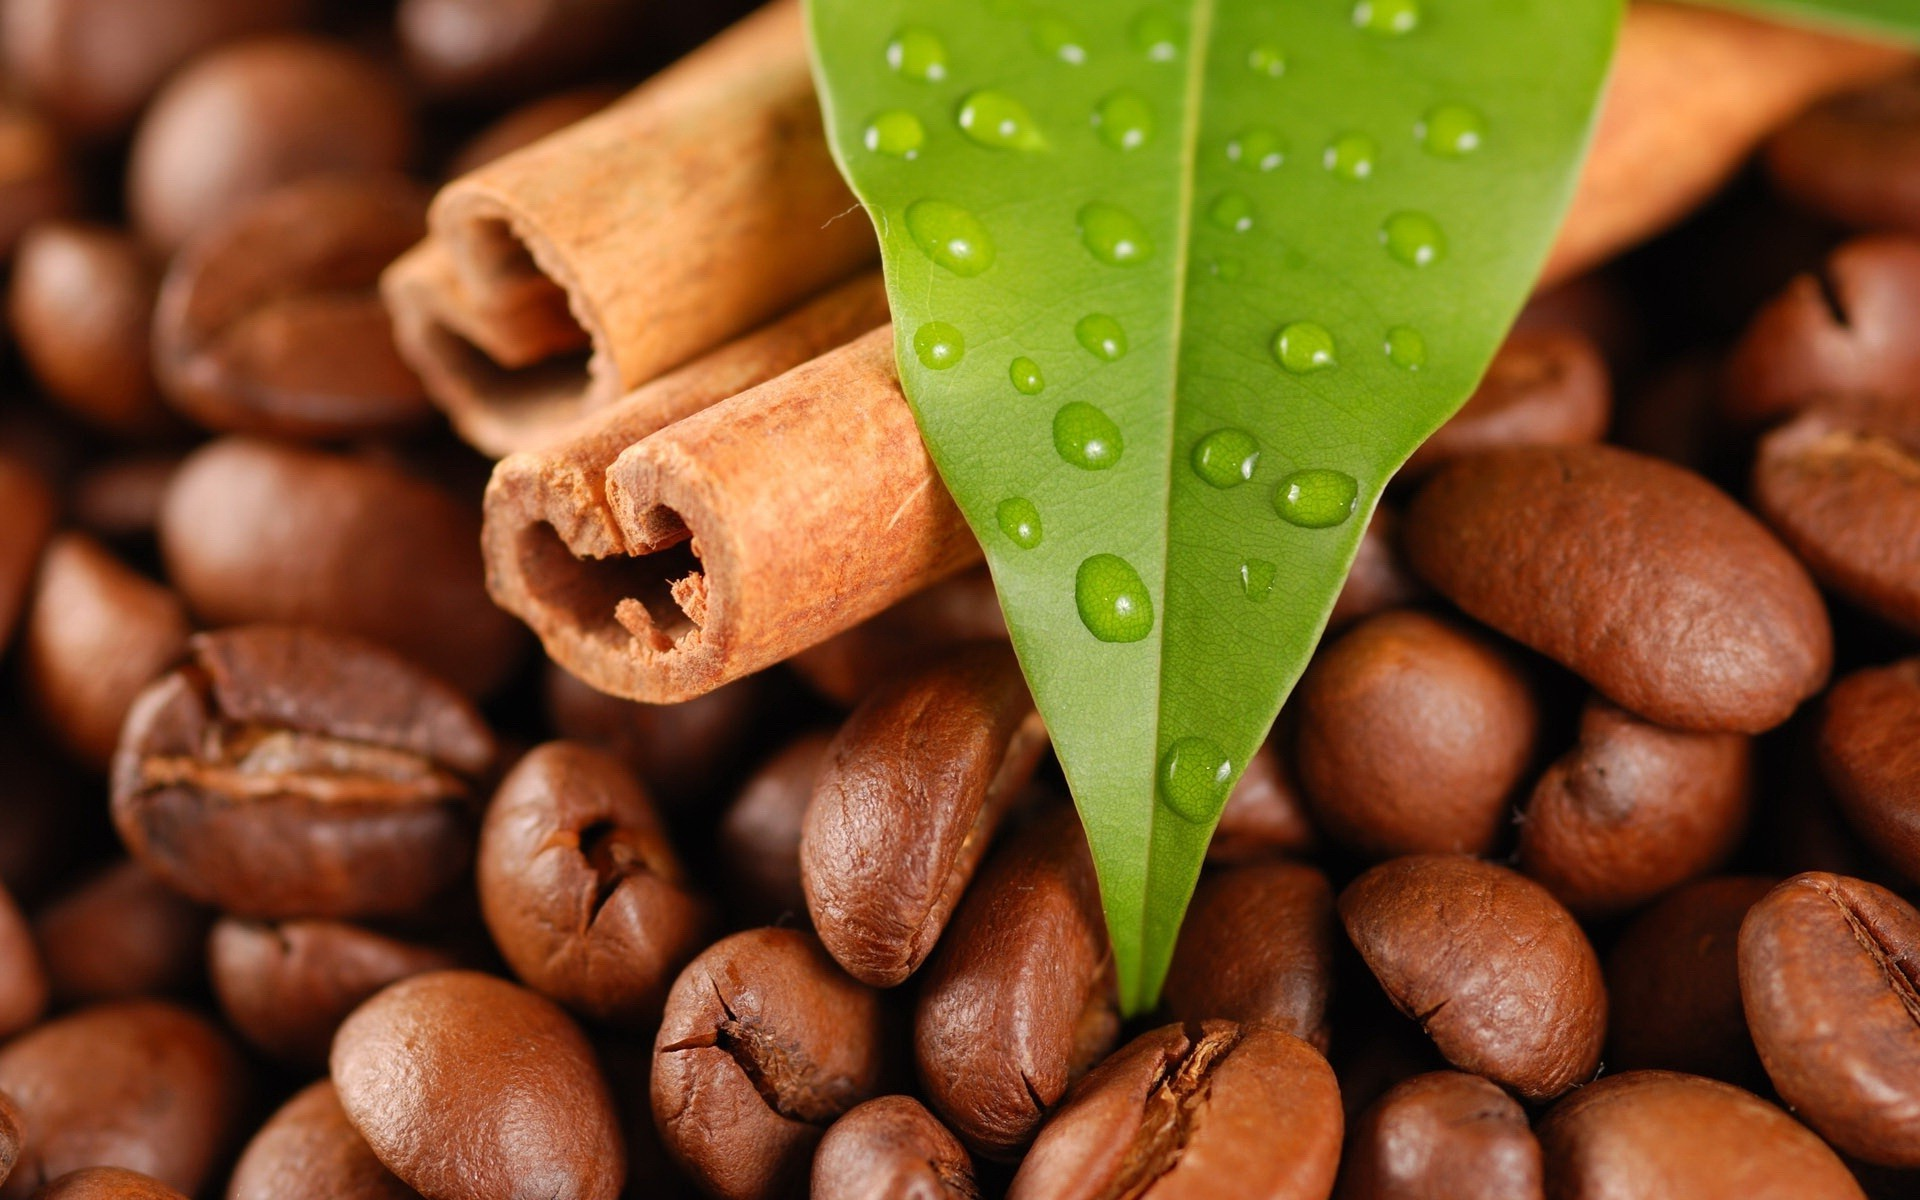 coffee bean caffeine food perfume espresso dark mocha drink cappuccino seed dawn crop batch close-up